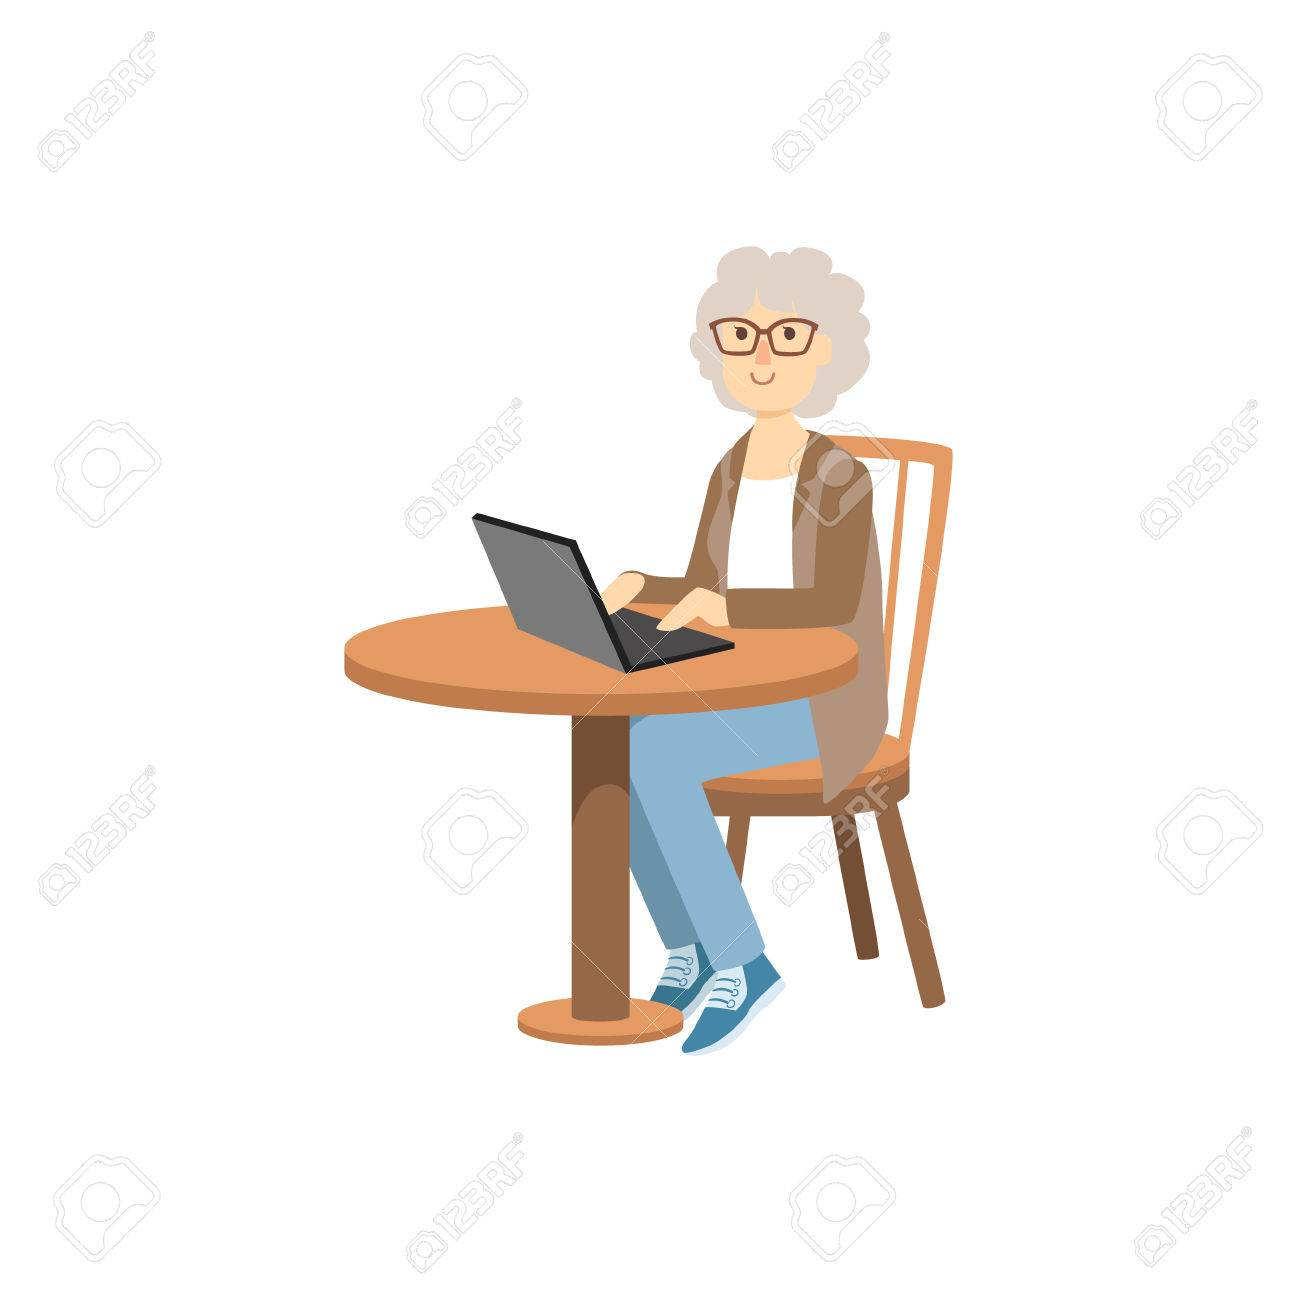 Old Woman Working On Lap Top Bright Color Cartoon Simple Style Flat Vector Sticker Isolated On White Background - 61069061